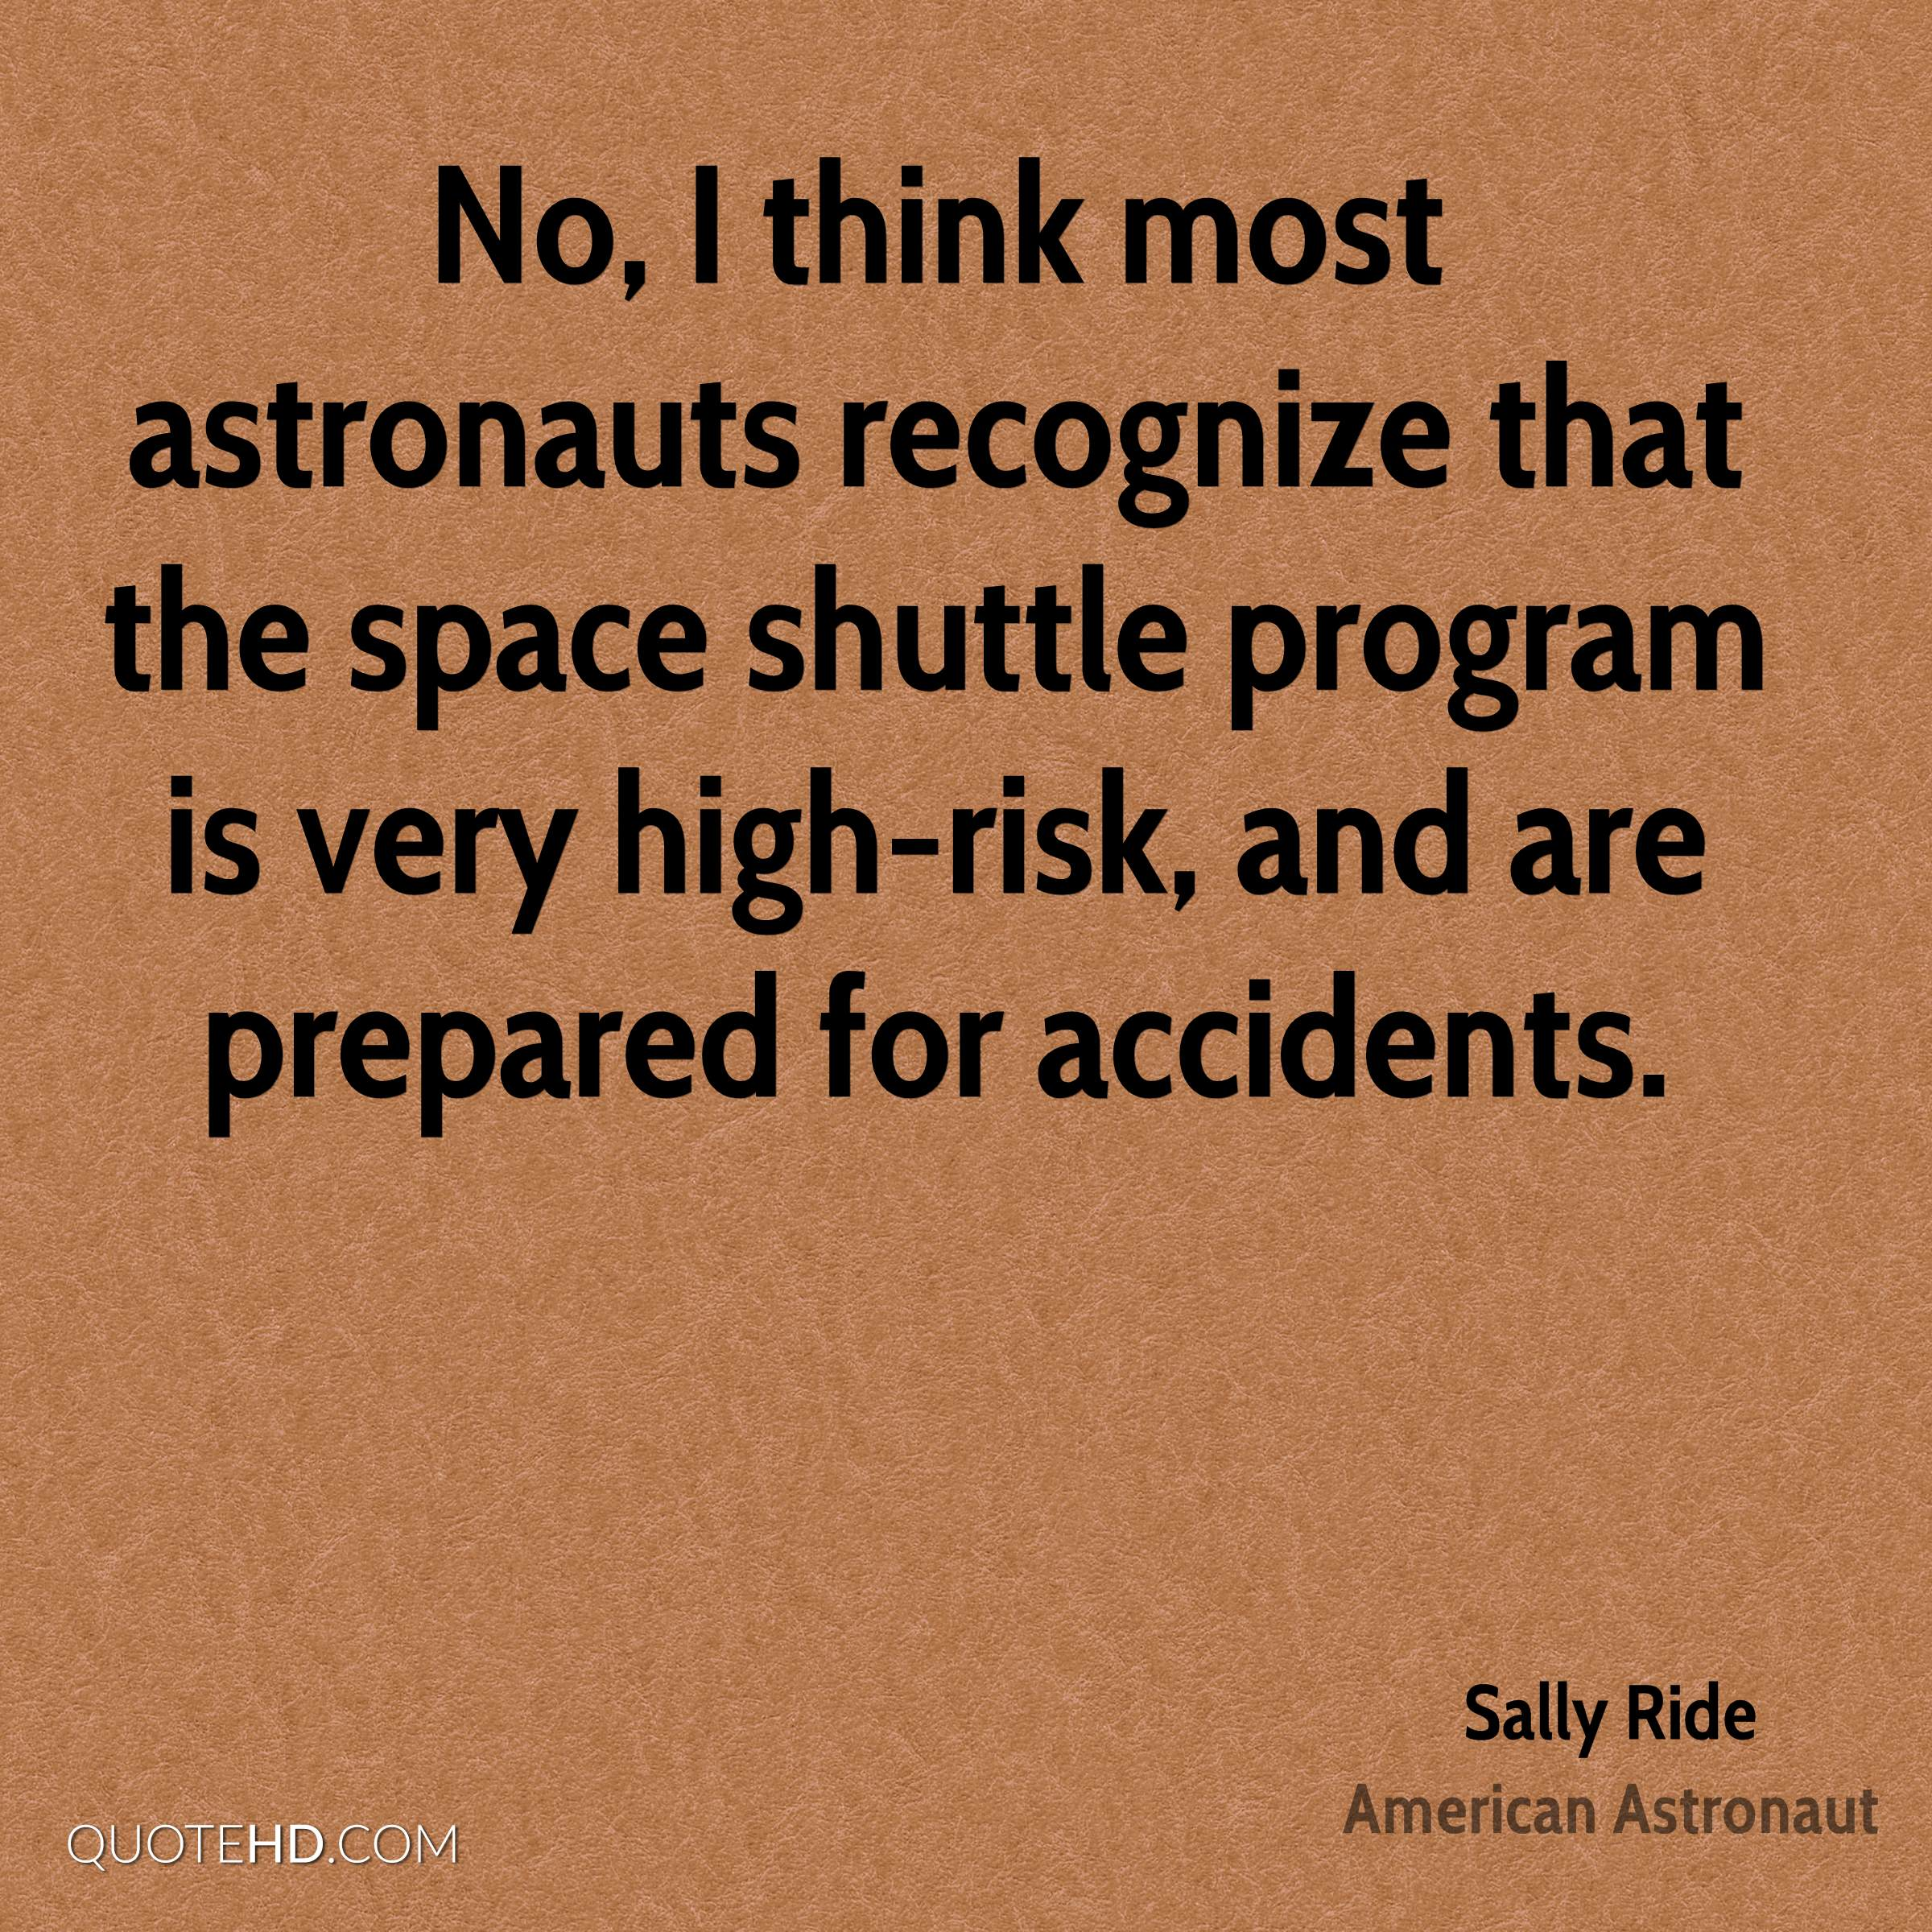 No, I think most astronauts recognize that the space shuttle program is very high-risk, and are prepared for accidents.